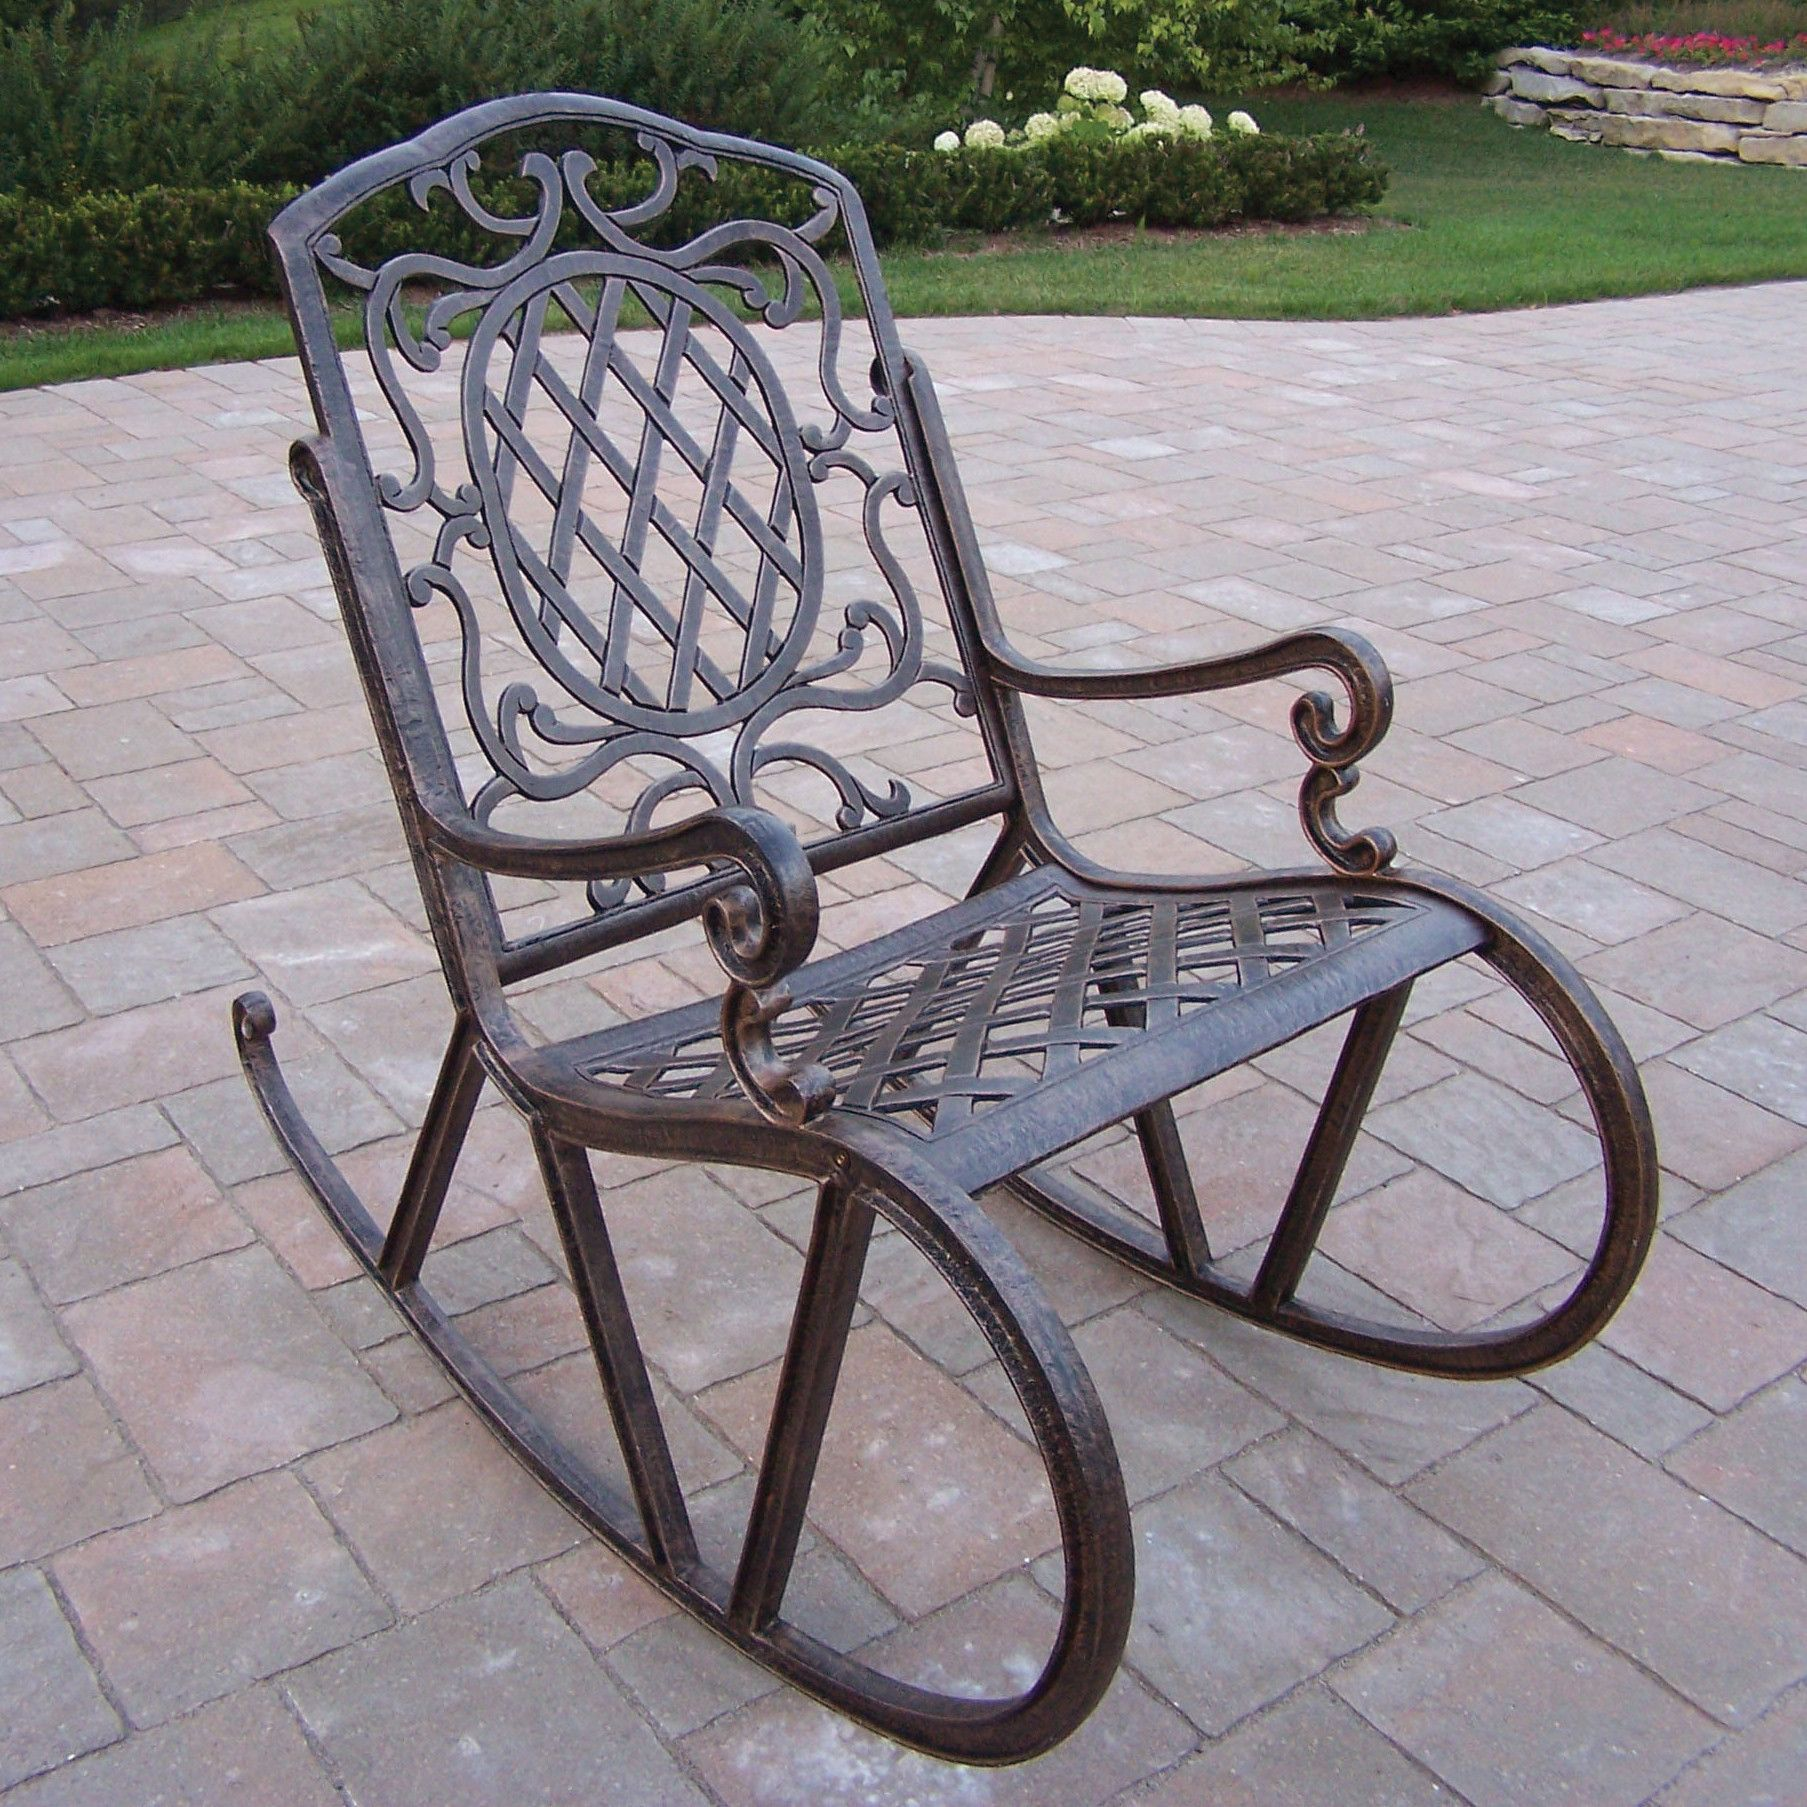 Mississippi Rocking Chair Outdoor Chairs Wrought Iron Furniture Sets